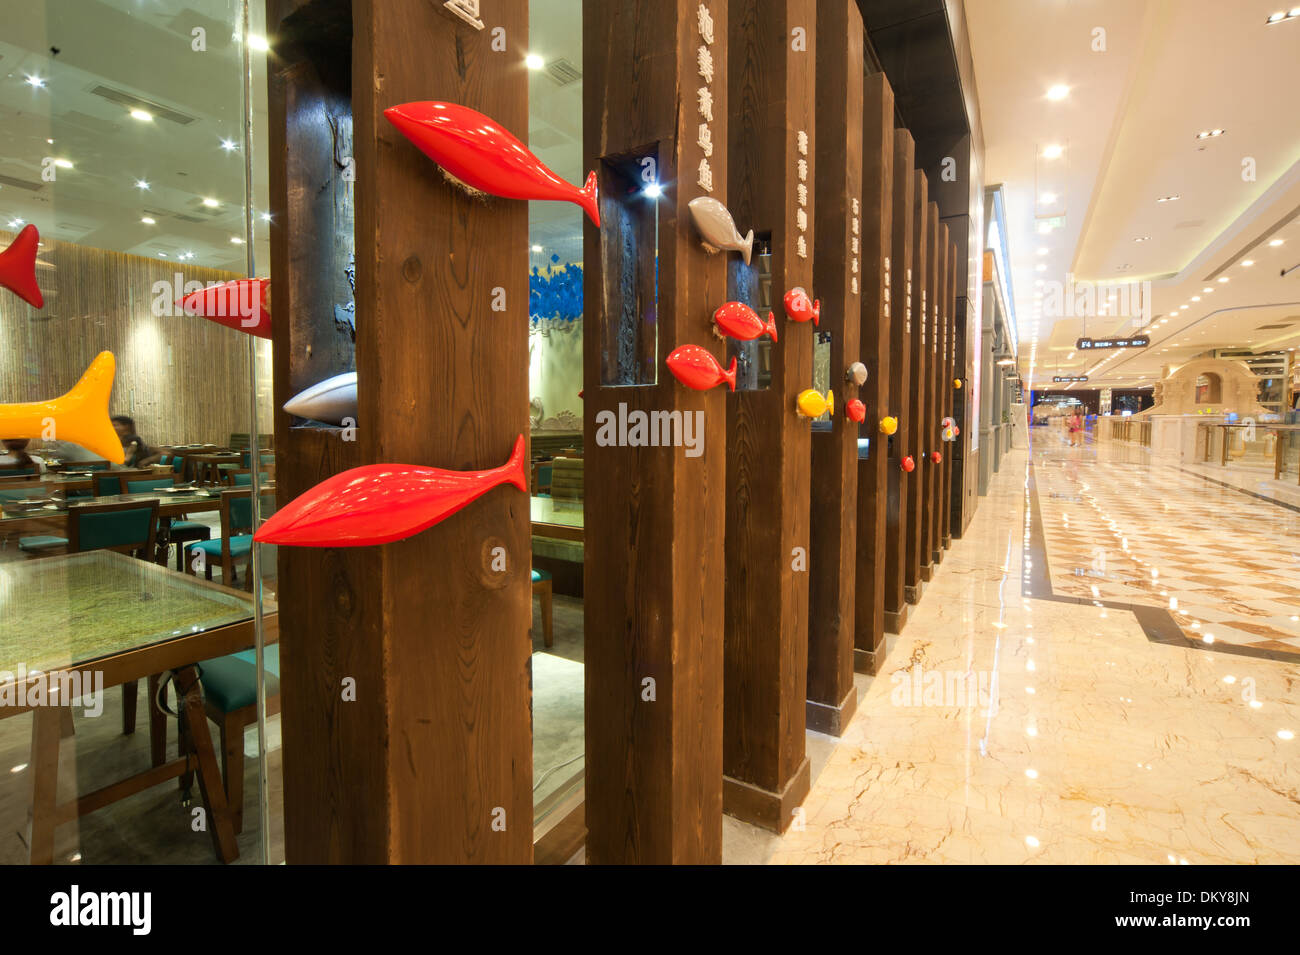 High-end restaurant decoration - Stock Image